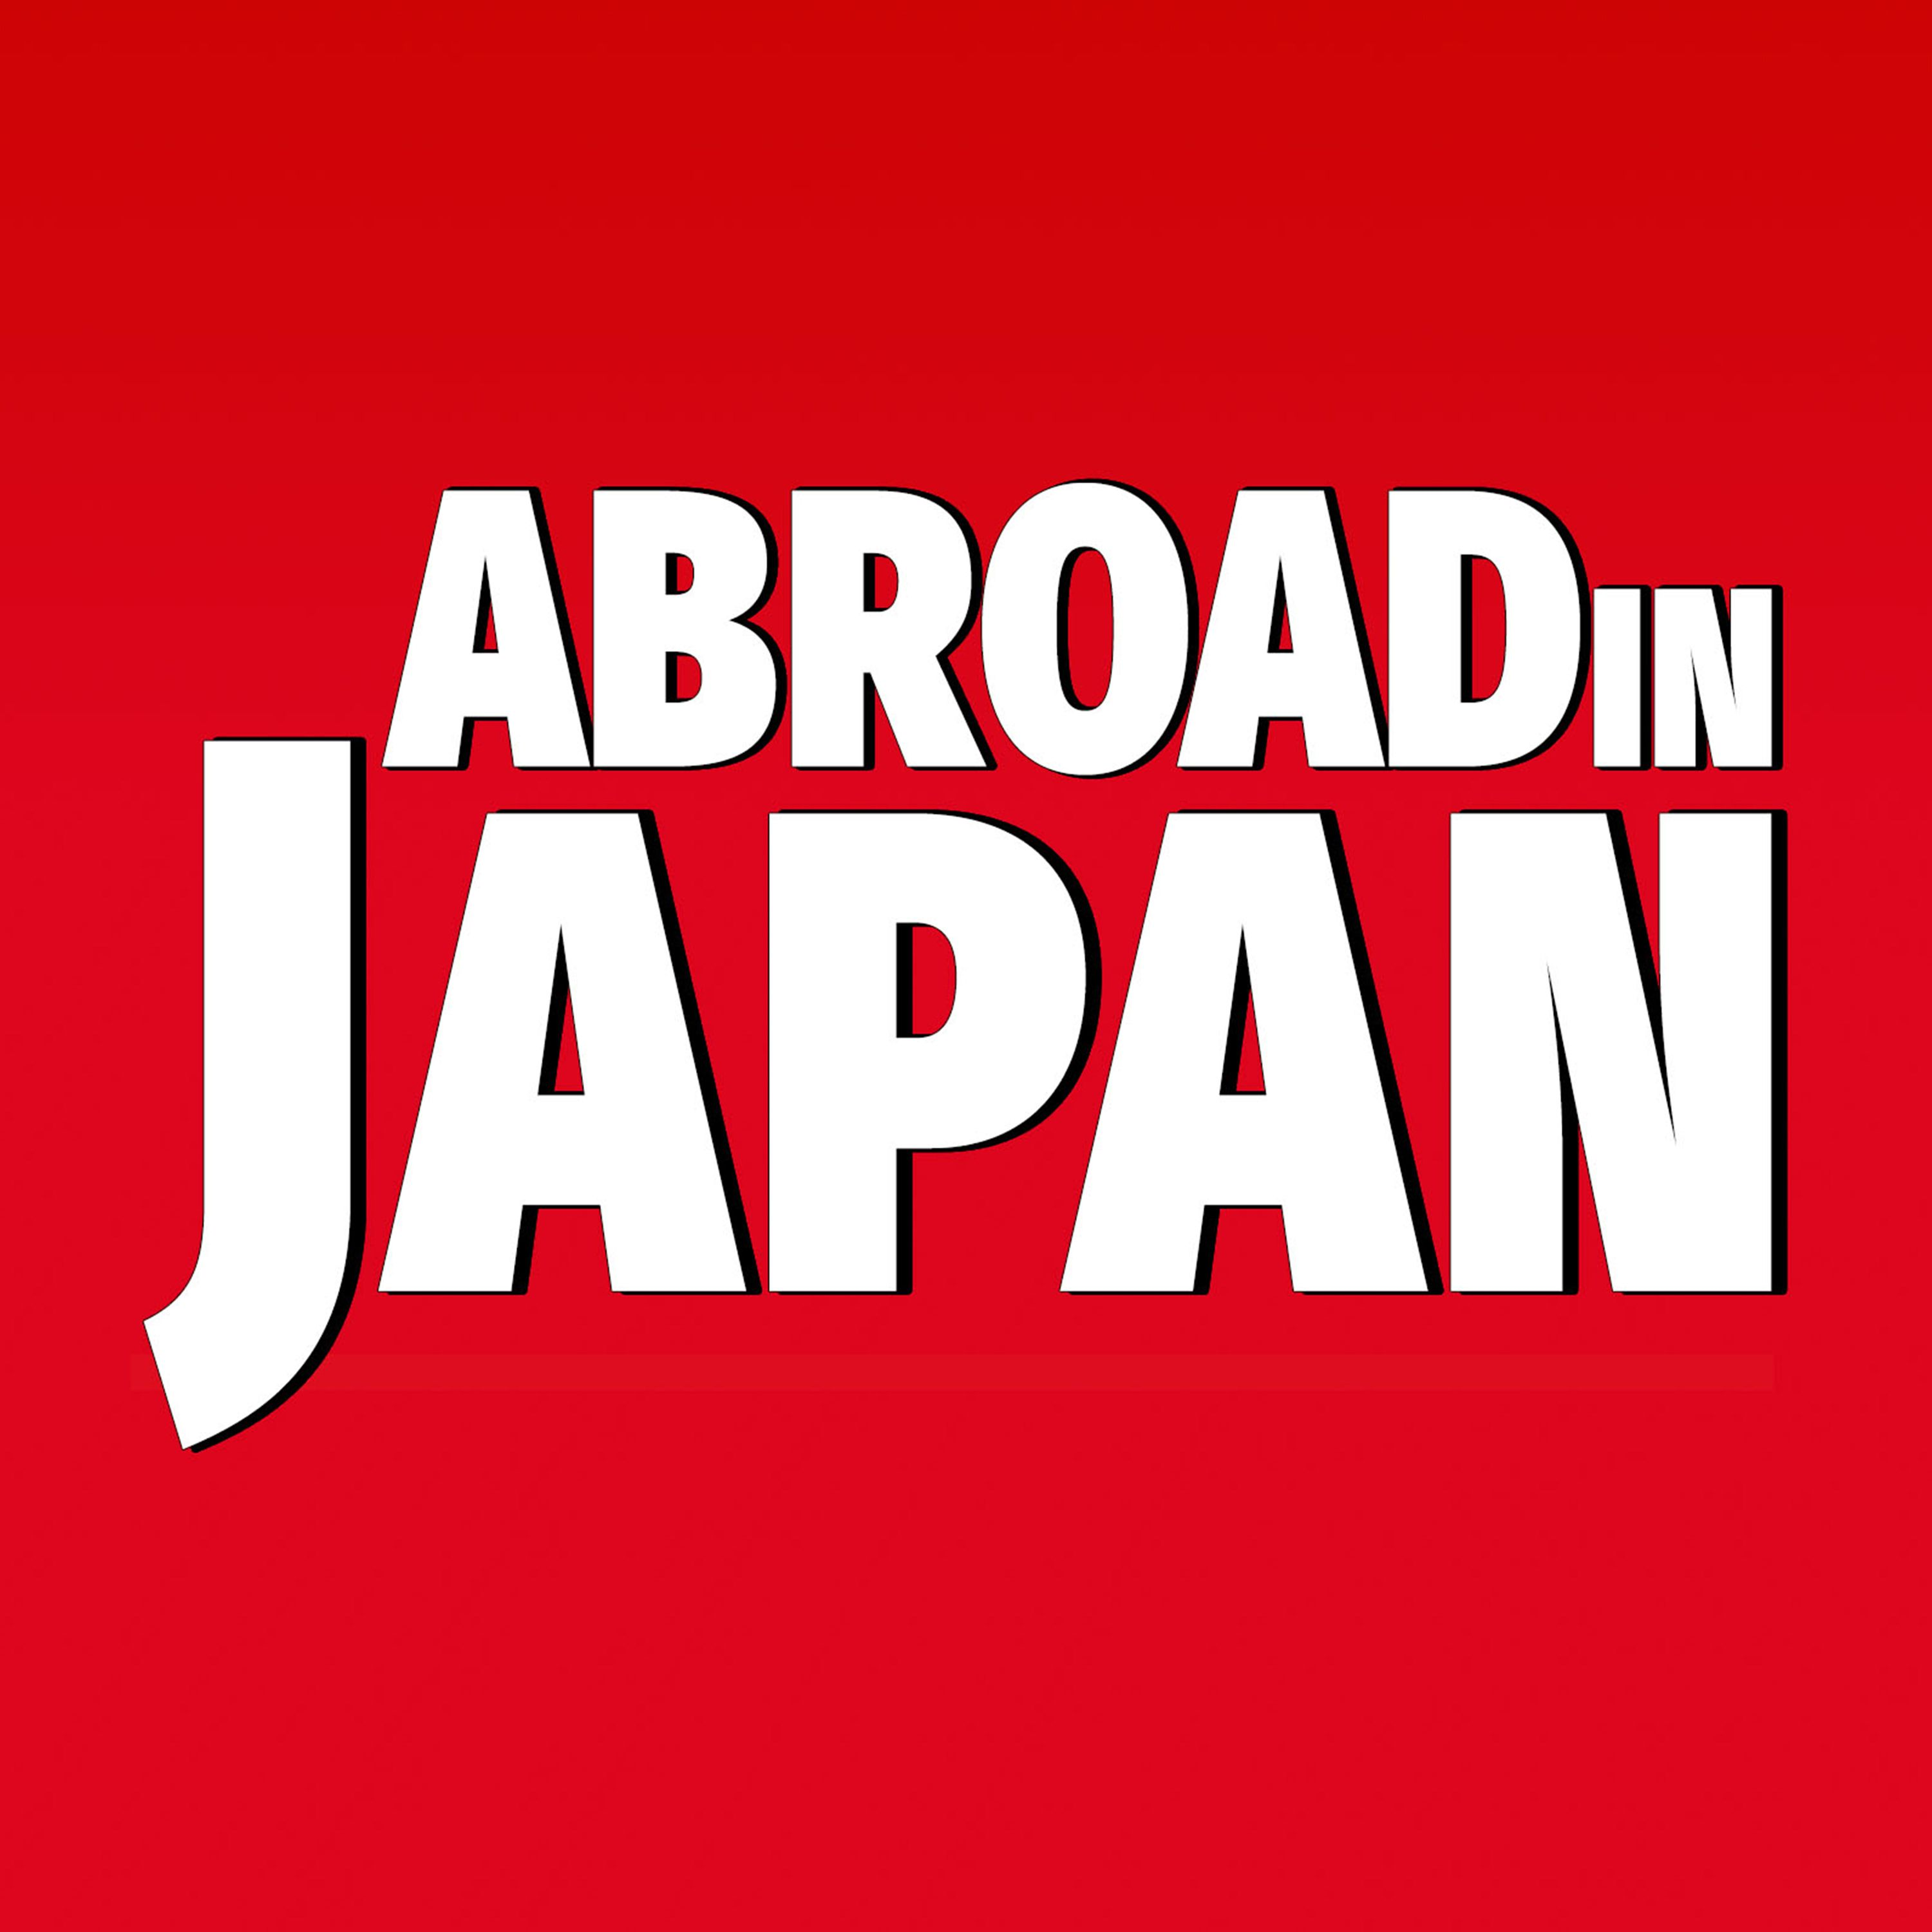 Japanese culture: Breaking down barriers